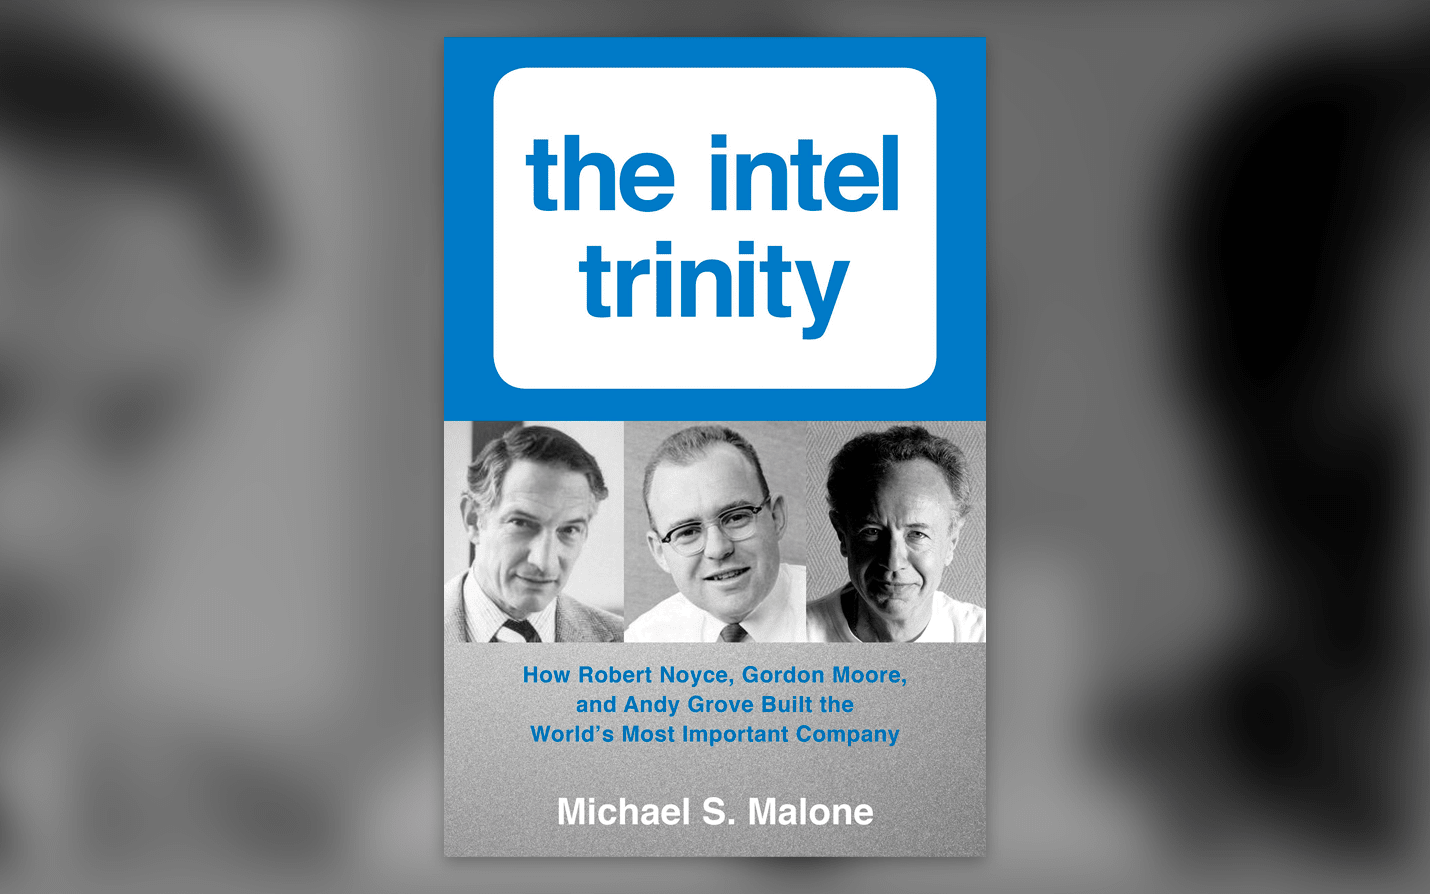 The Intel Trinity book cover